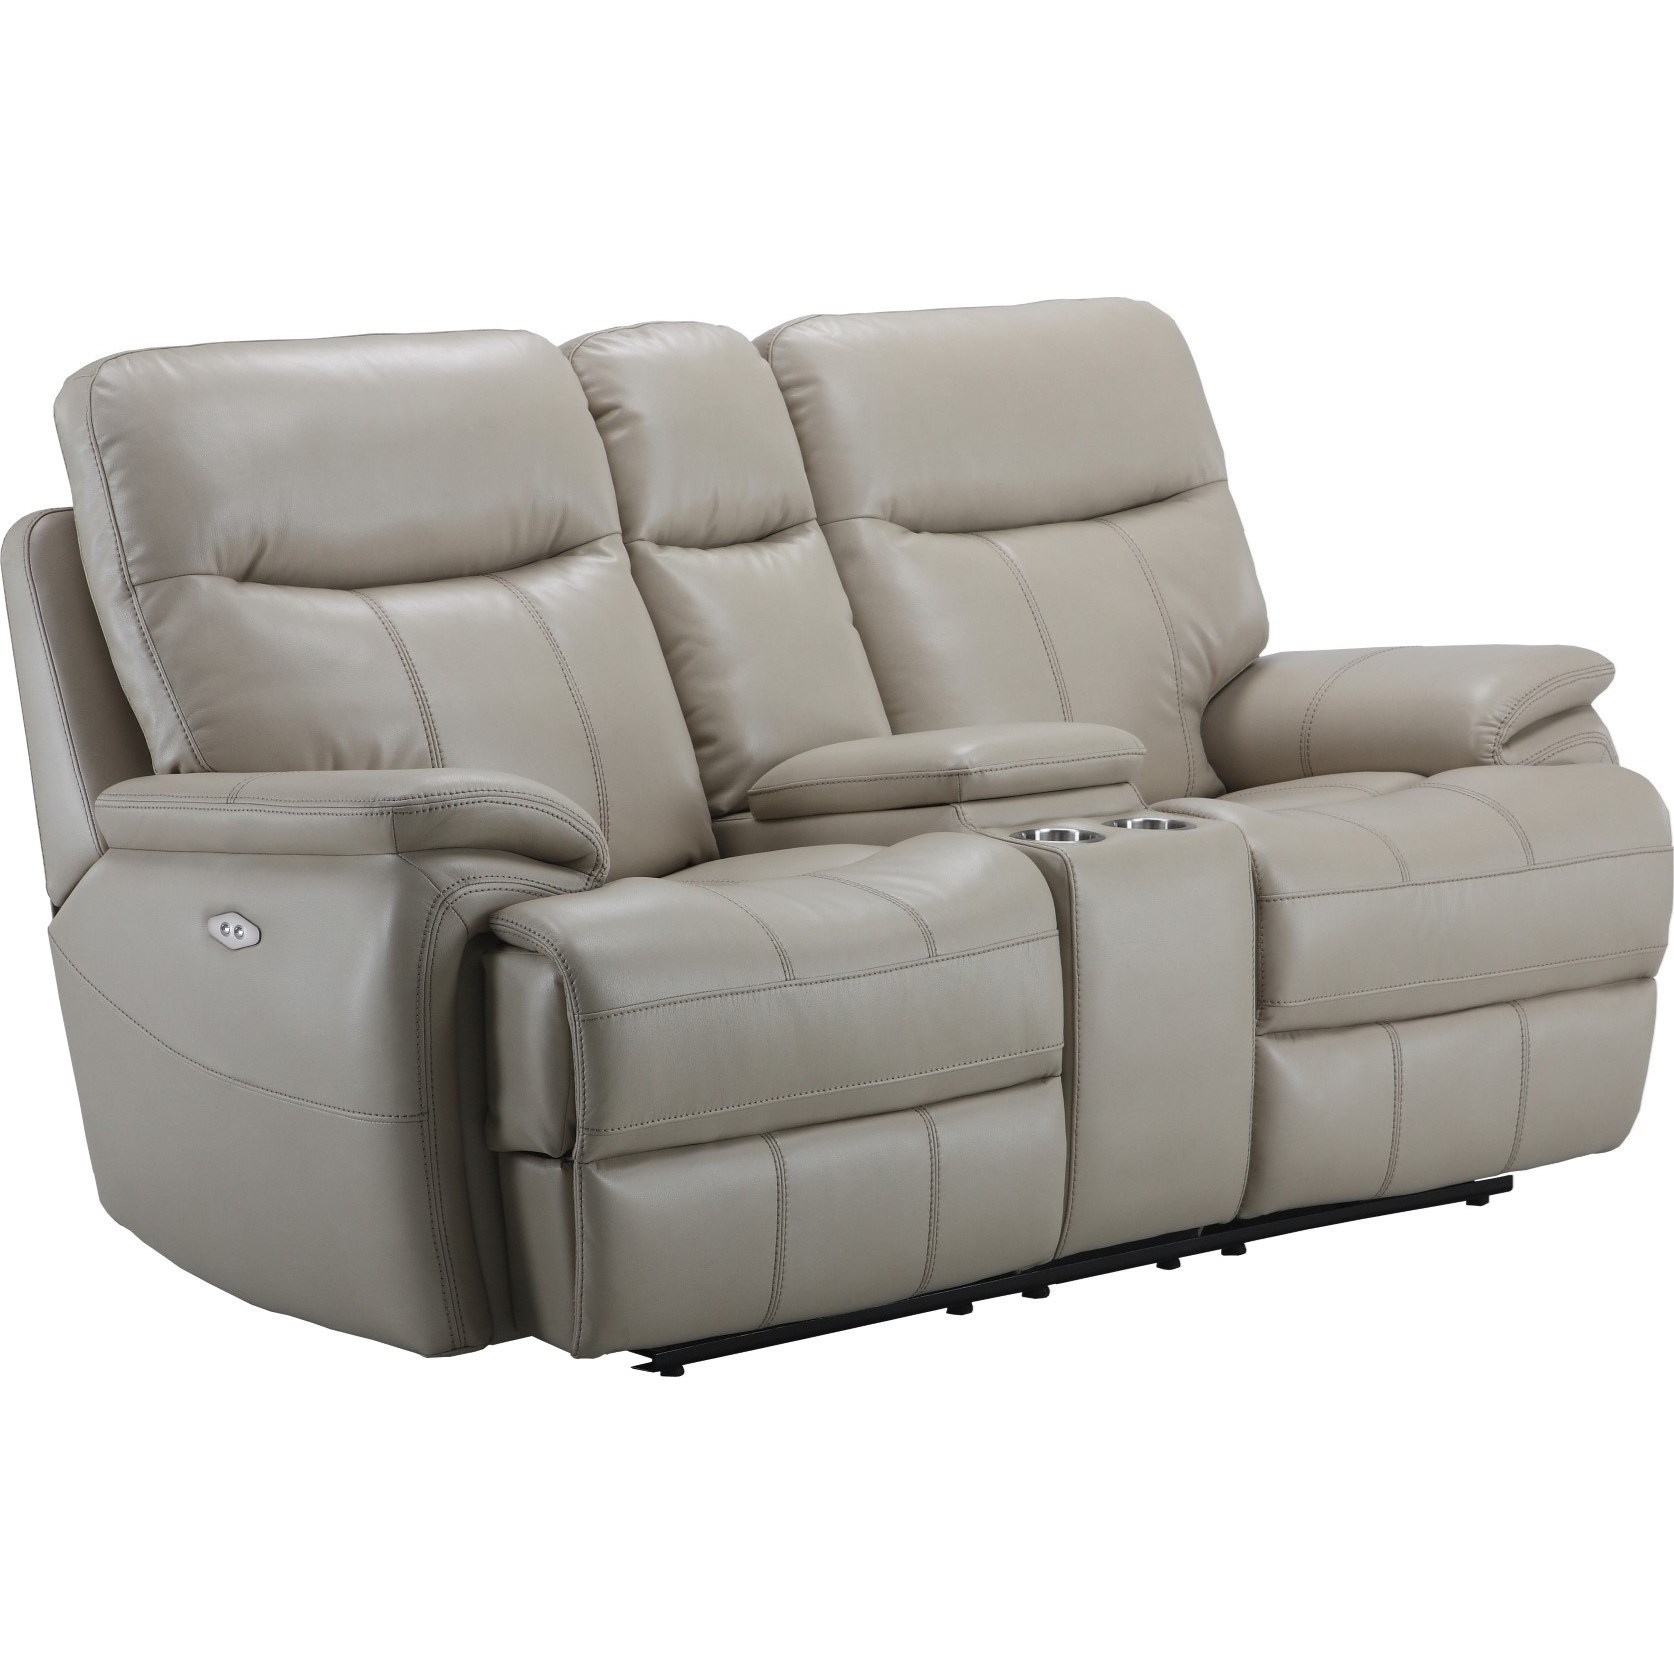 Parker Living Dylan Dual Recliner Power Console Loveseat With Cup